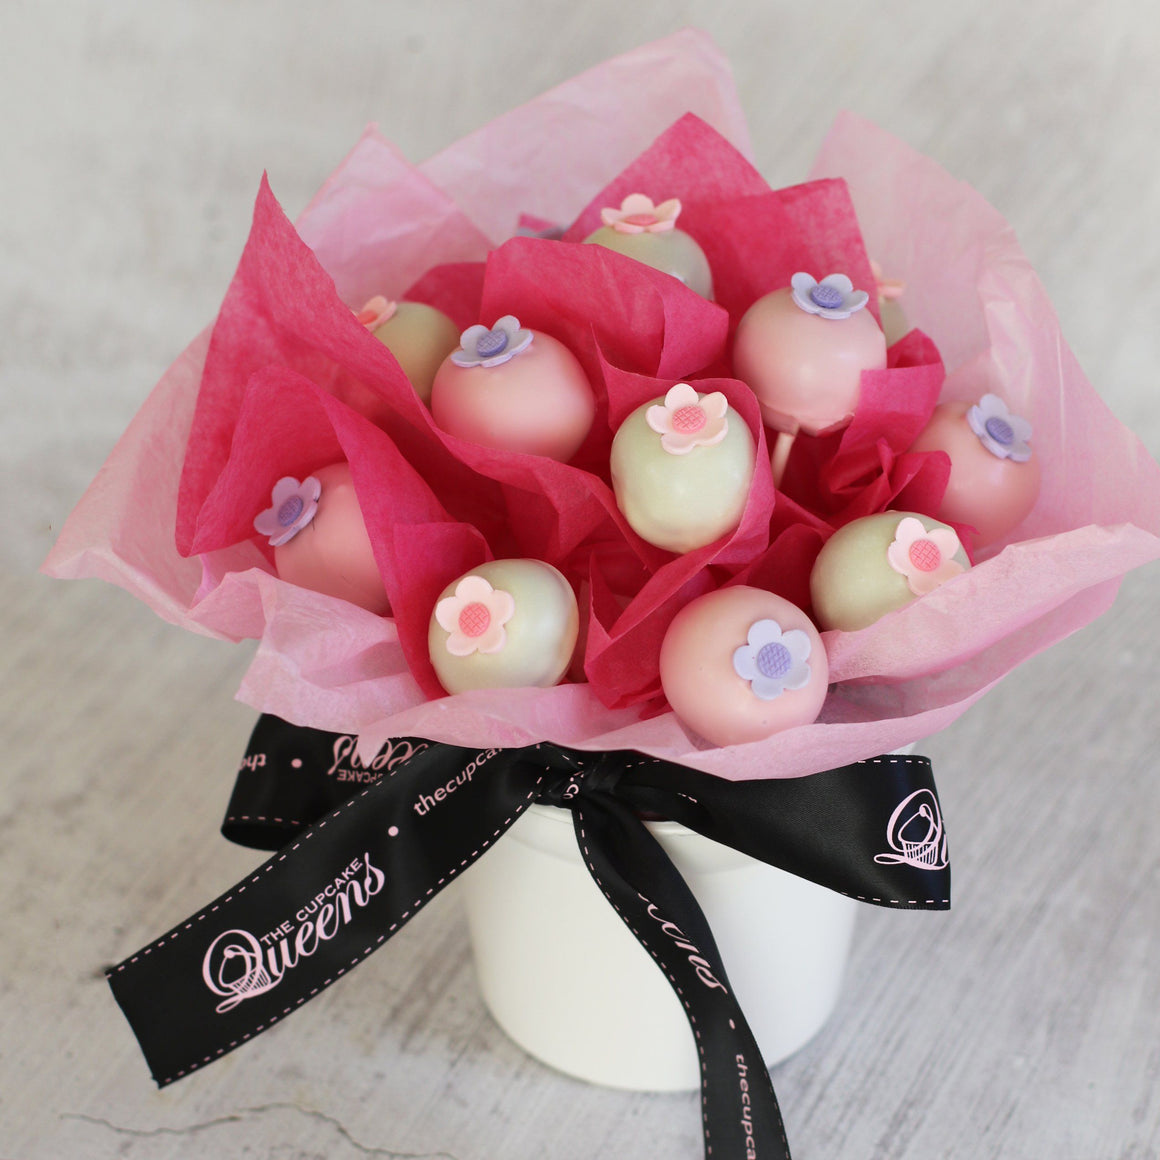 Mother's Day Cake Pop Bouquet Special Occasion The Cupcake Queens